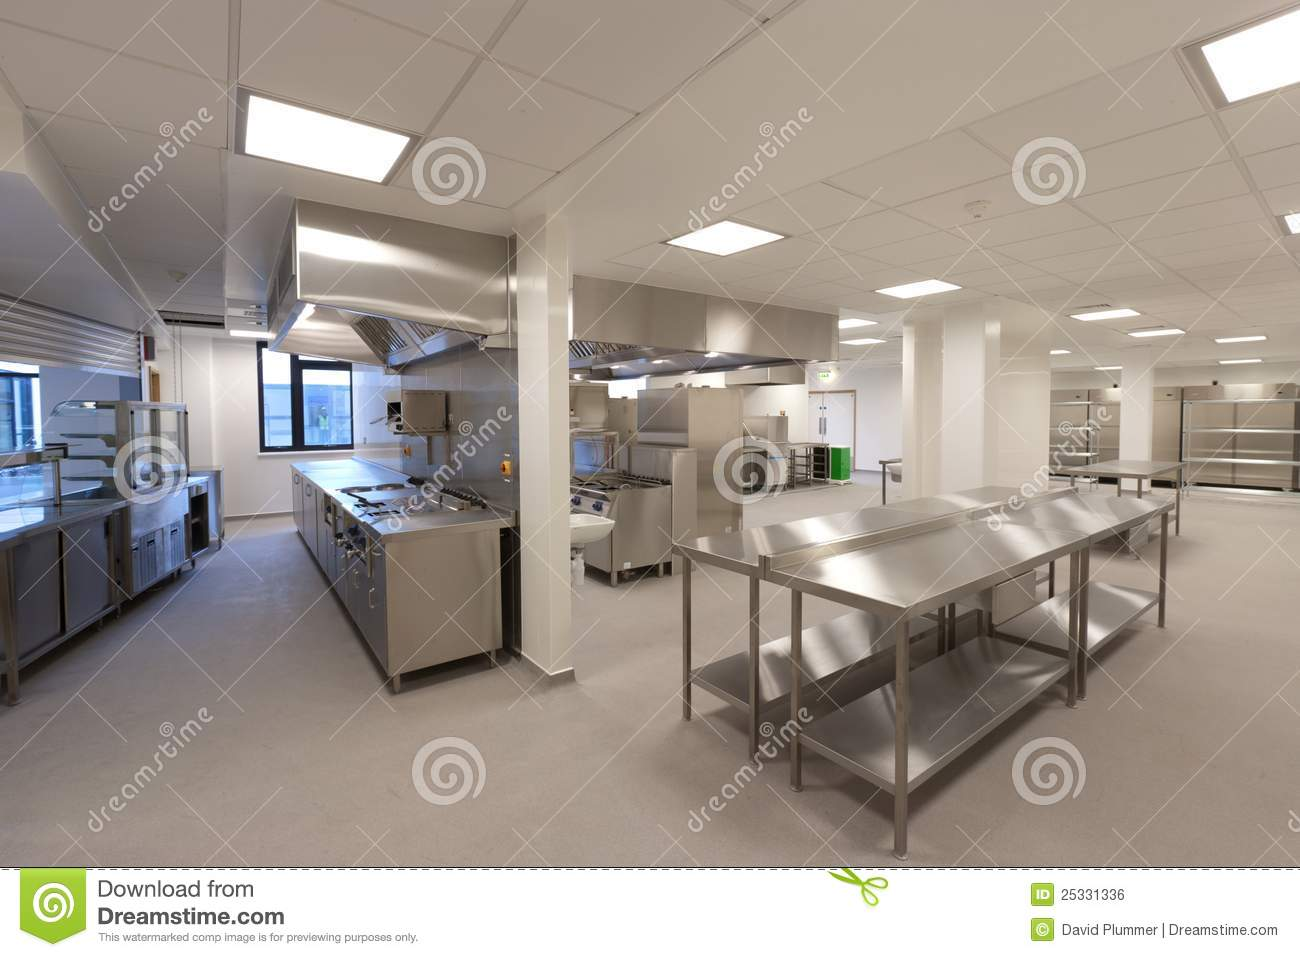 Hospital kitchen